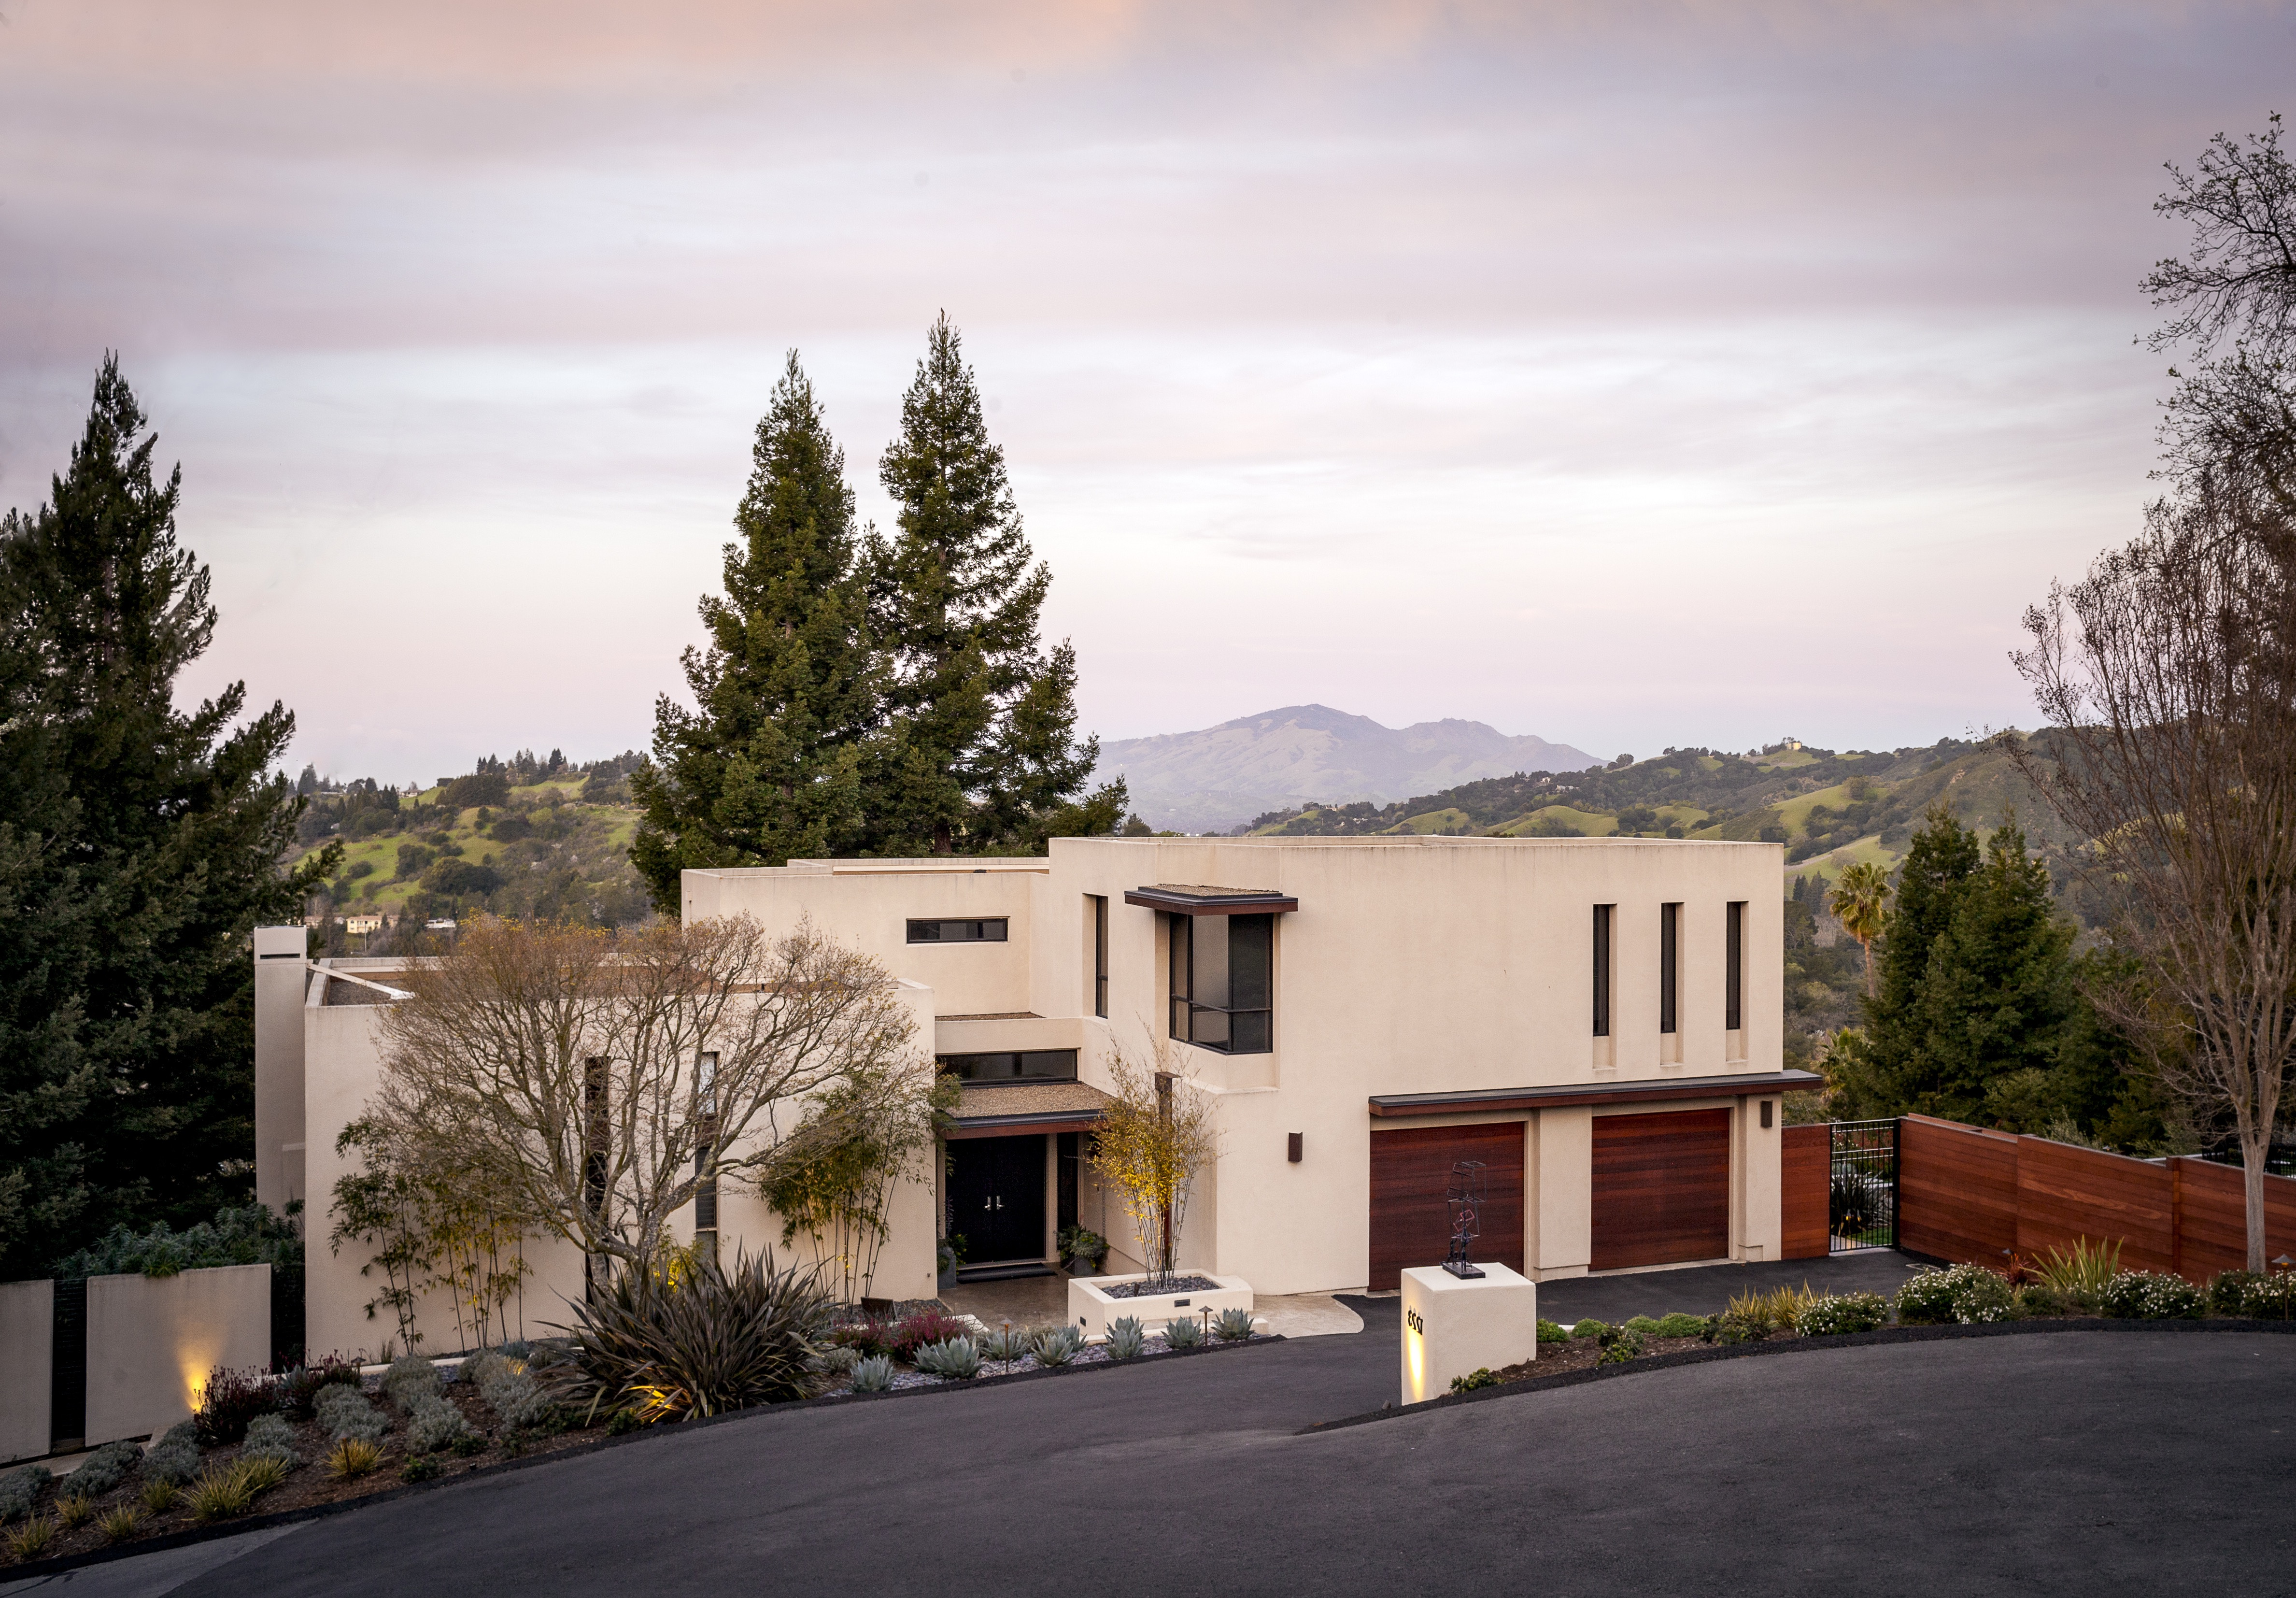 Minimalist Modern Exterior Landscape And Driveway (Image 12 of 33)